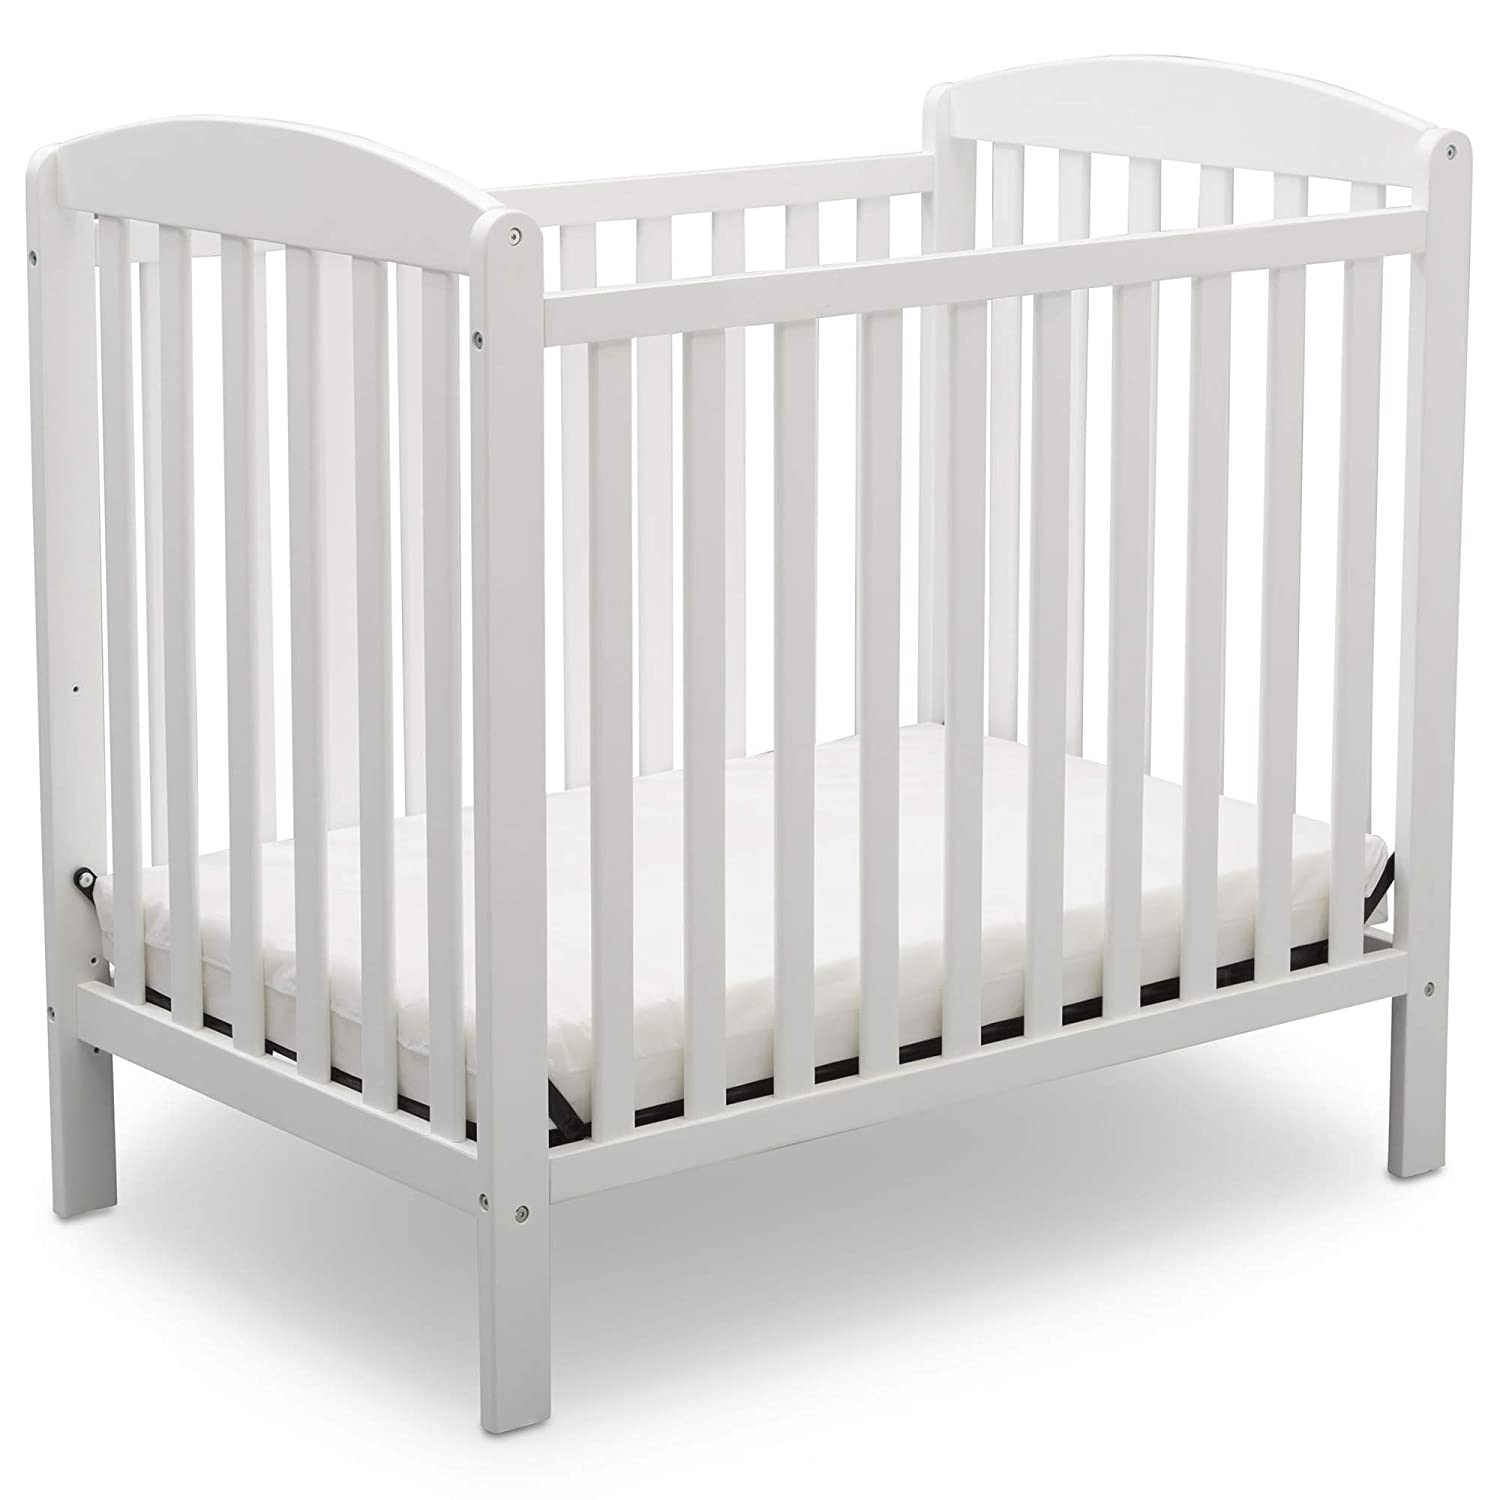 Delta Children Emery Mini Convertible Baby Crib with Mattress, Bianca White